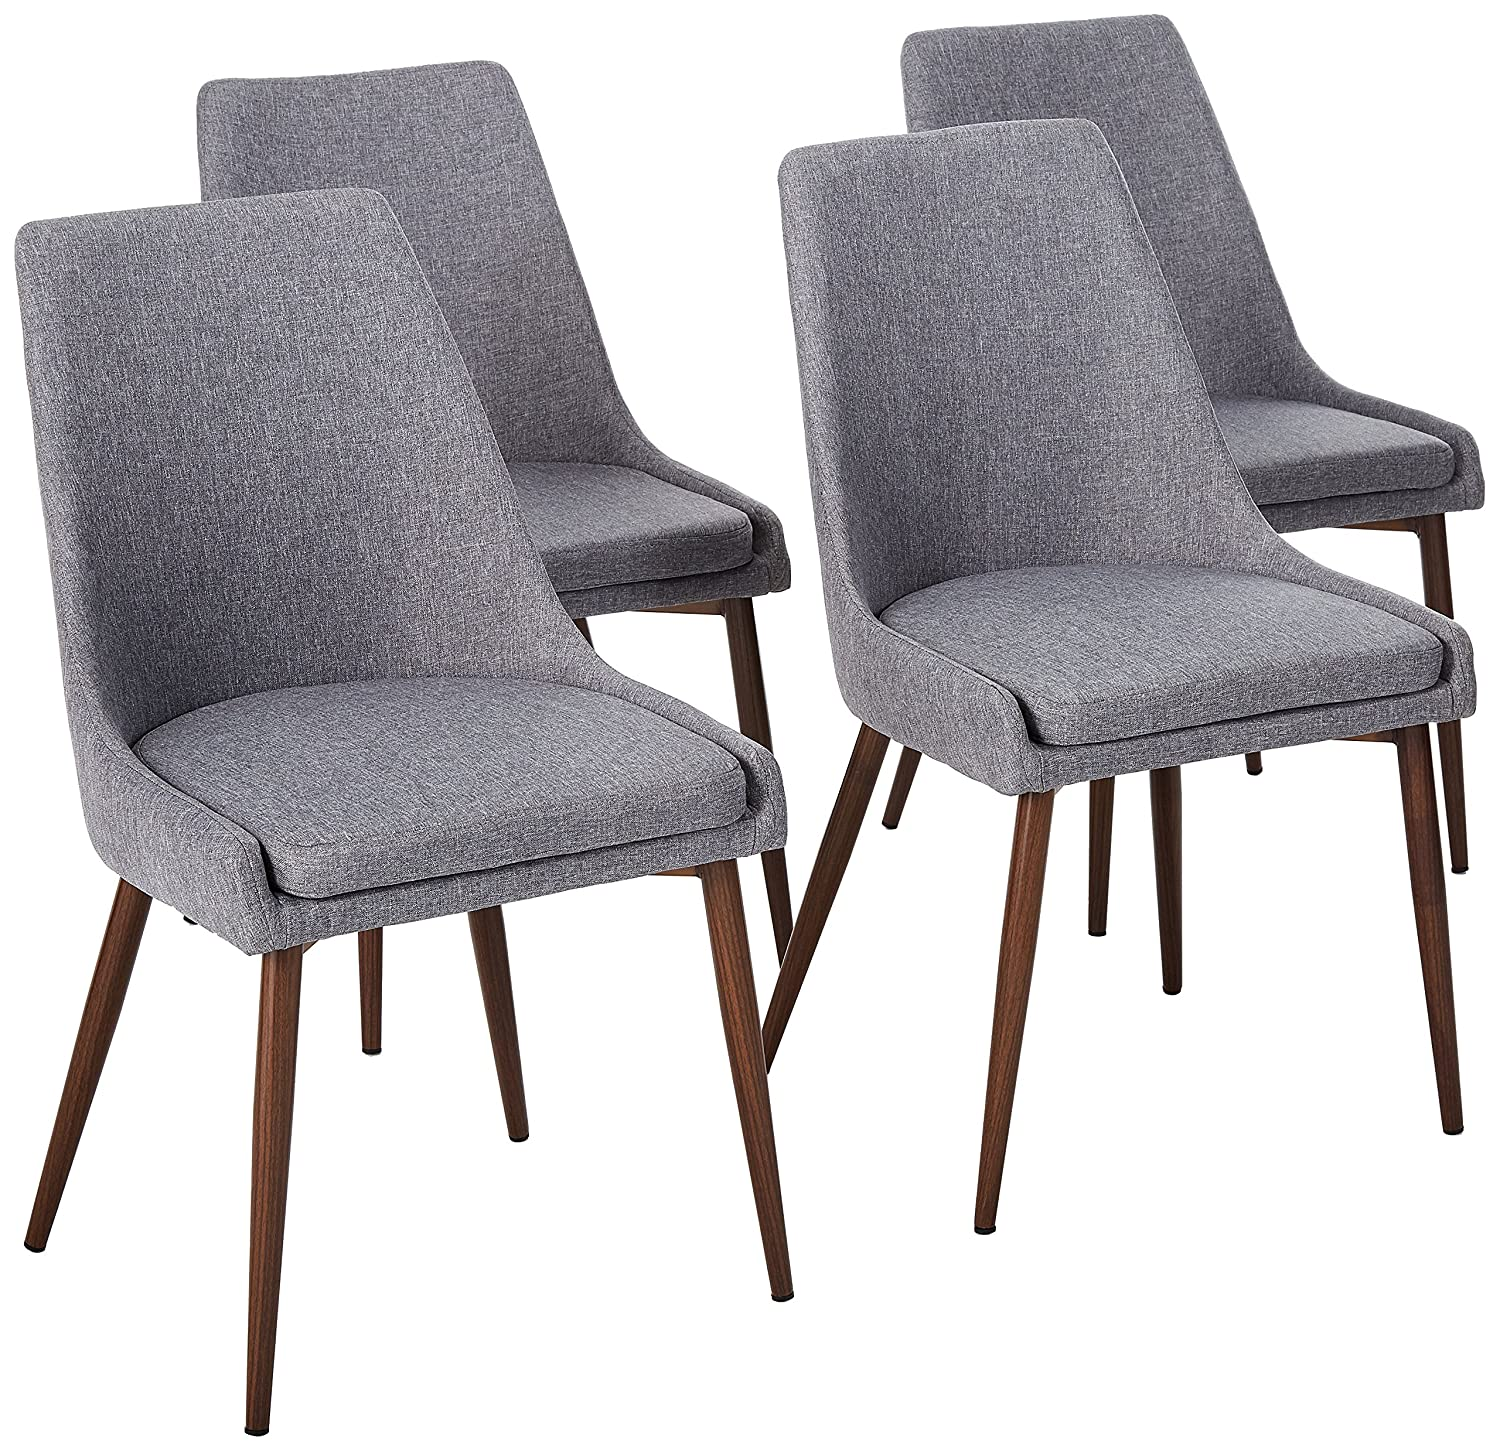 POLY BARK Ethen Dining Chair, Set of 4, Gray